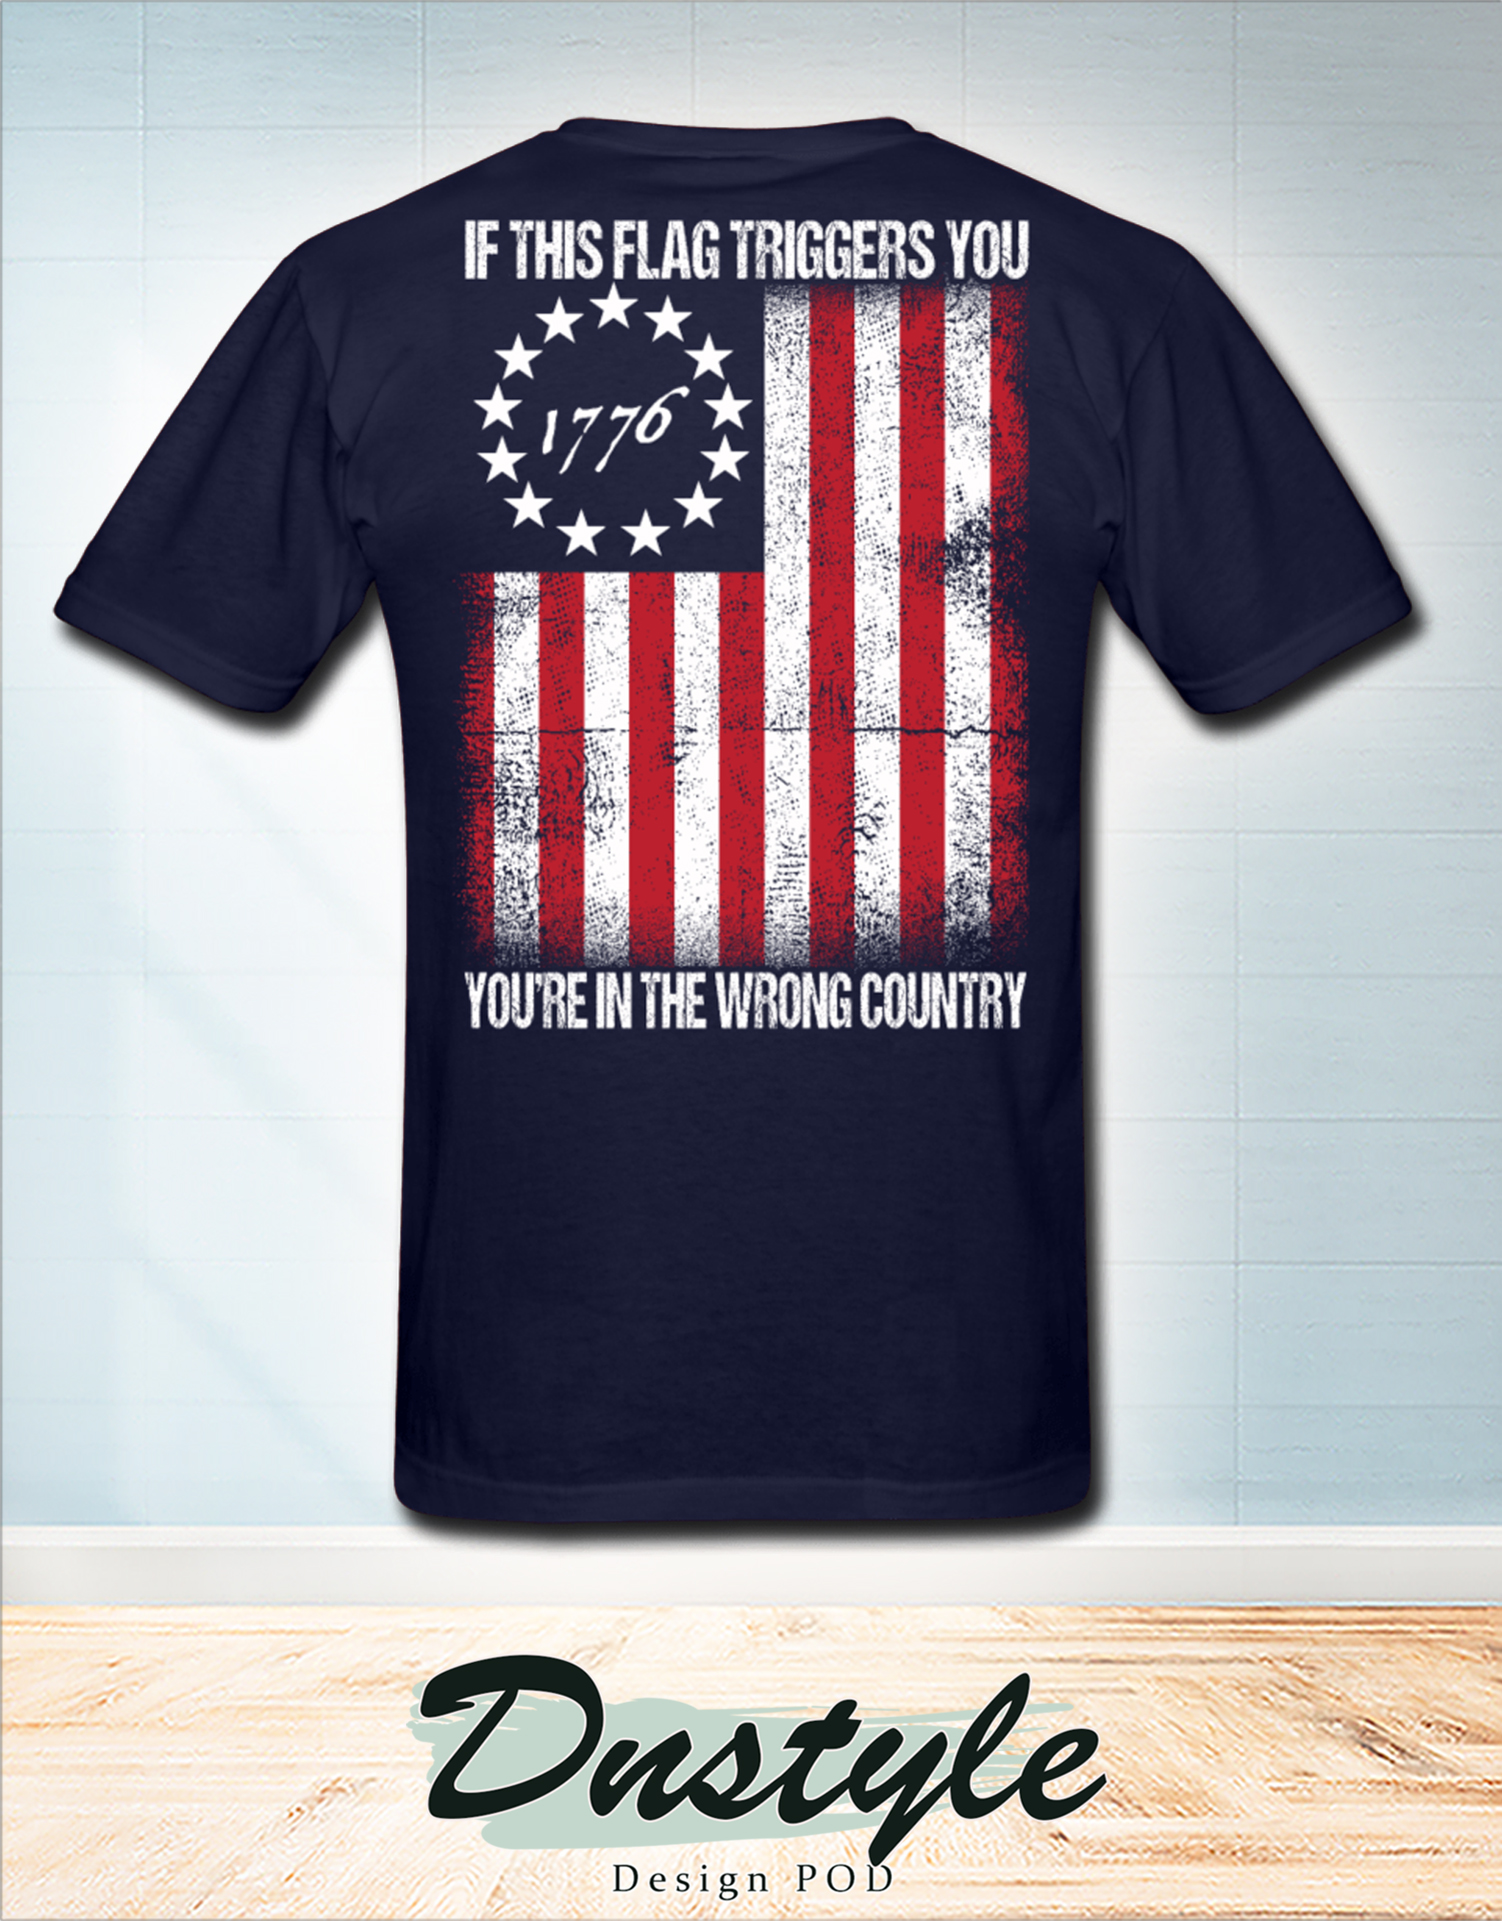 1776 if this flag trigged you you're in the wrong country american flag t-shirt 2